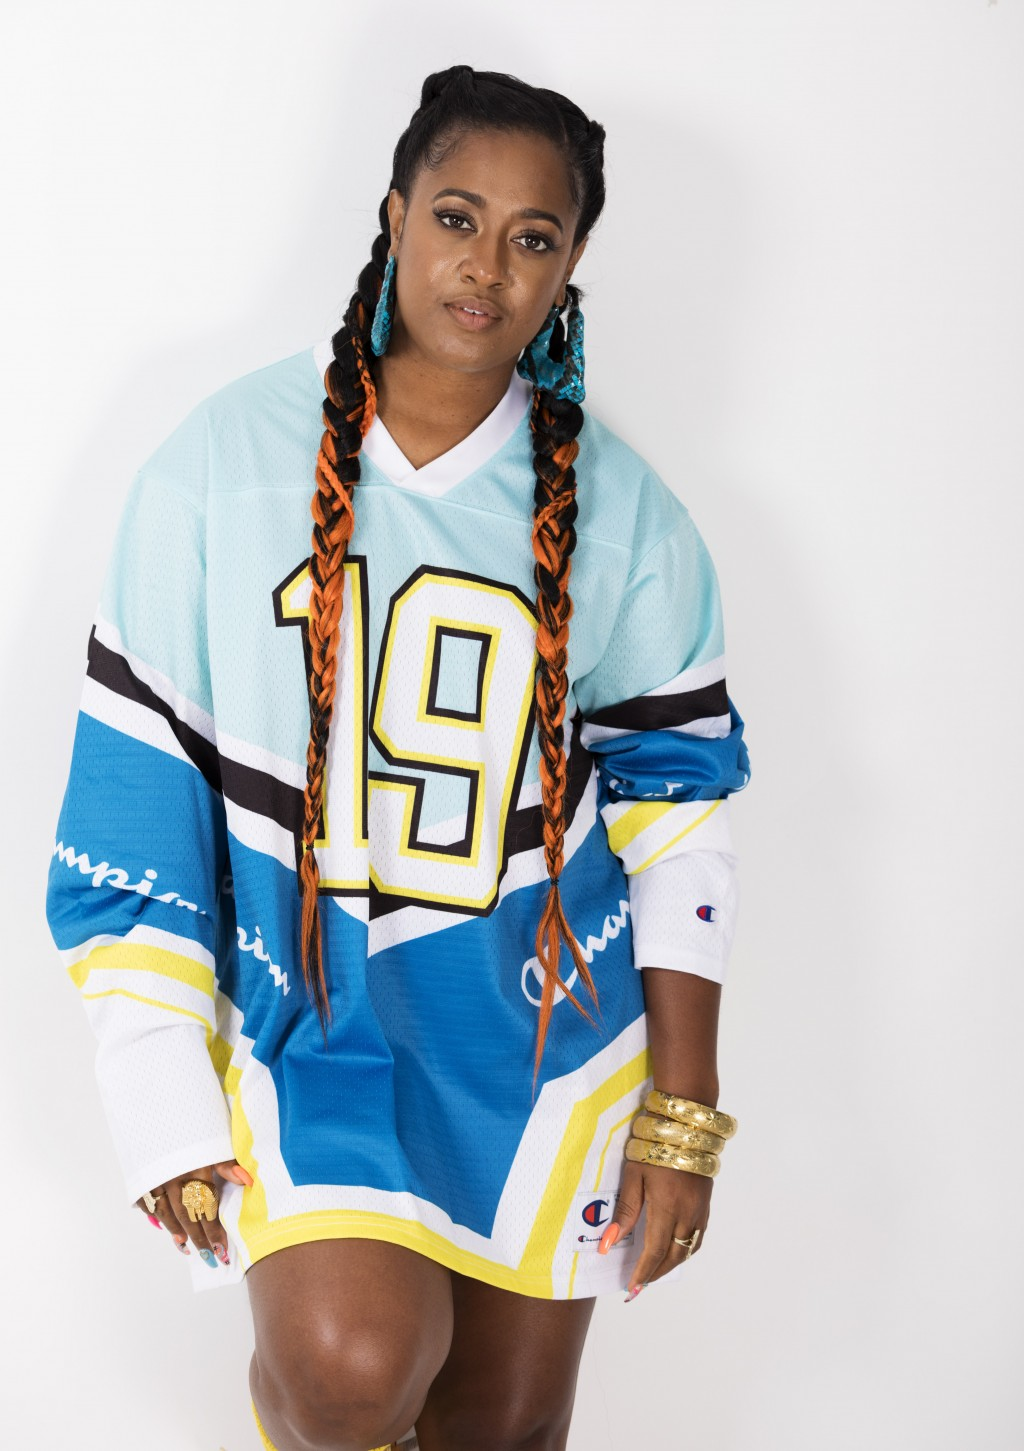 """This Aug. 22, 2019 photo shows Rapsody posing for a portrait in New York to promote her latest album """"Eve."""" (Photo by Brian Ach/Invision/AP)"""